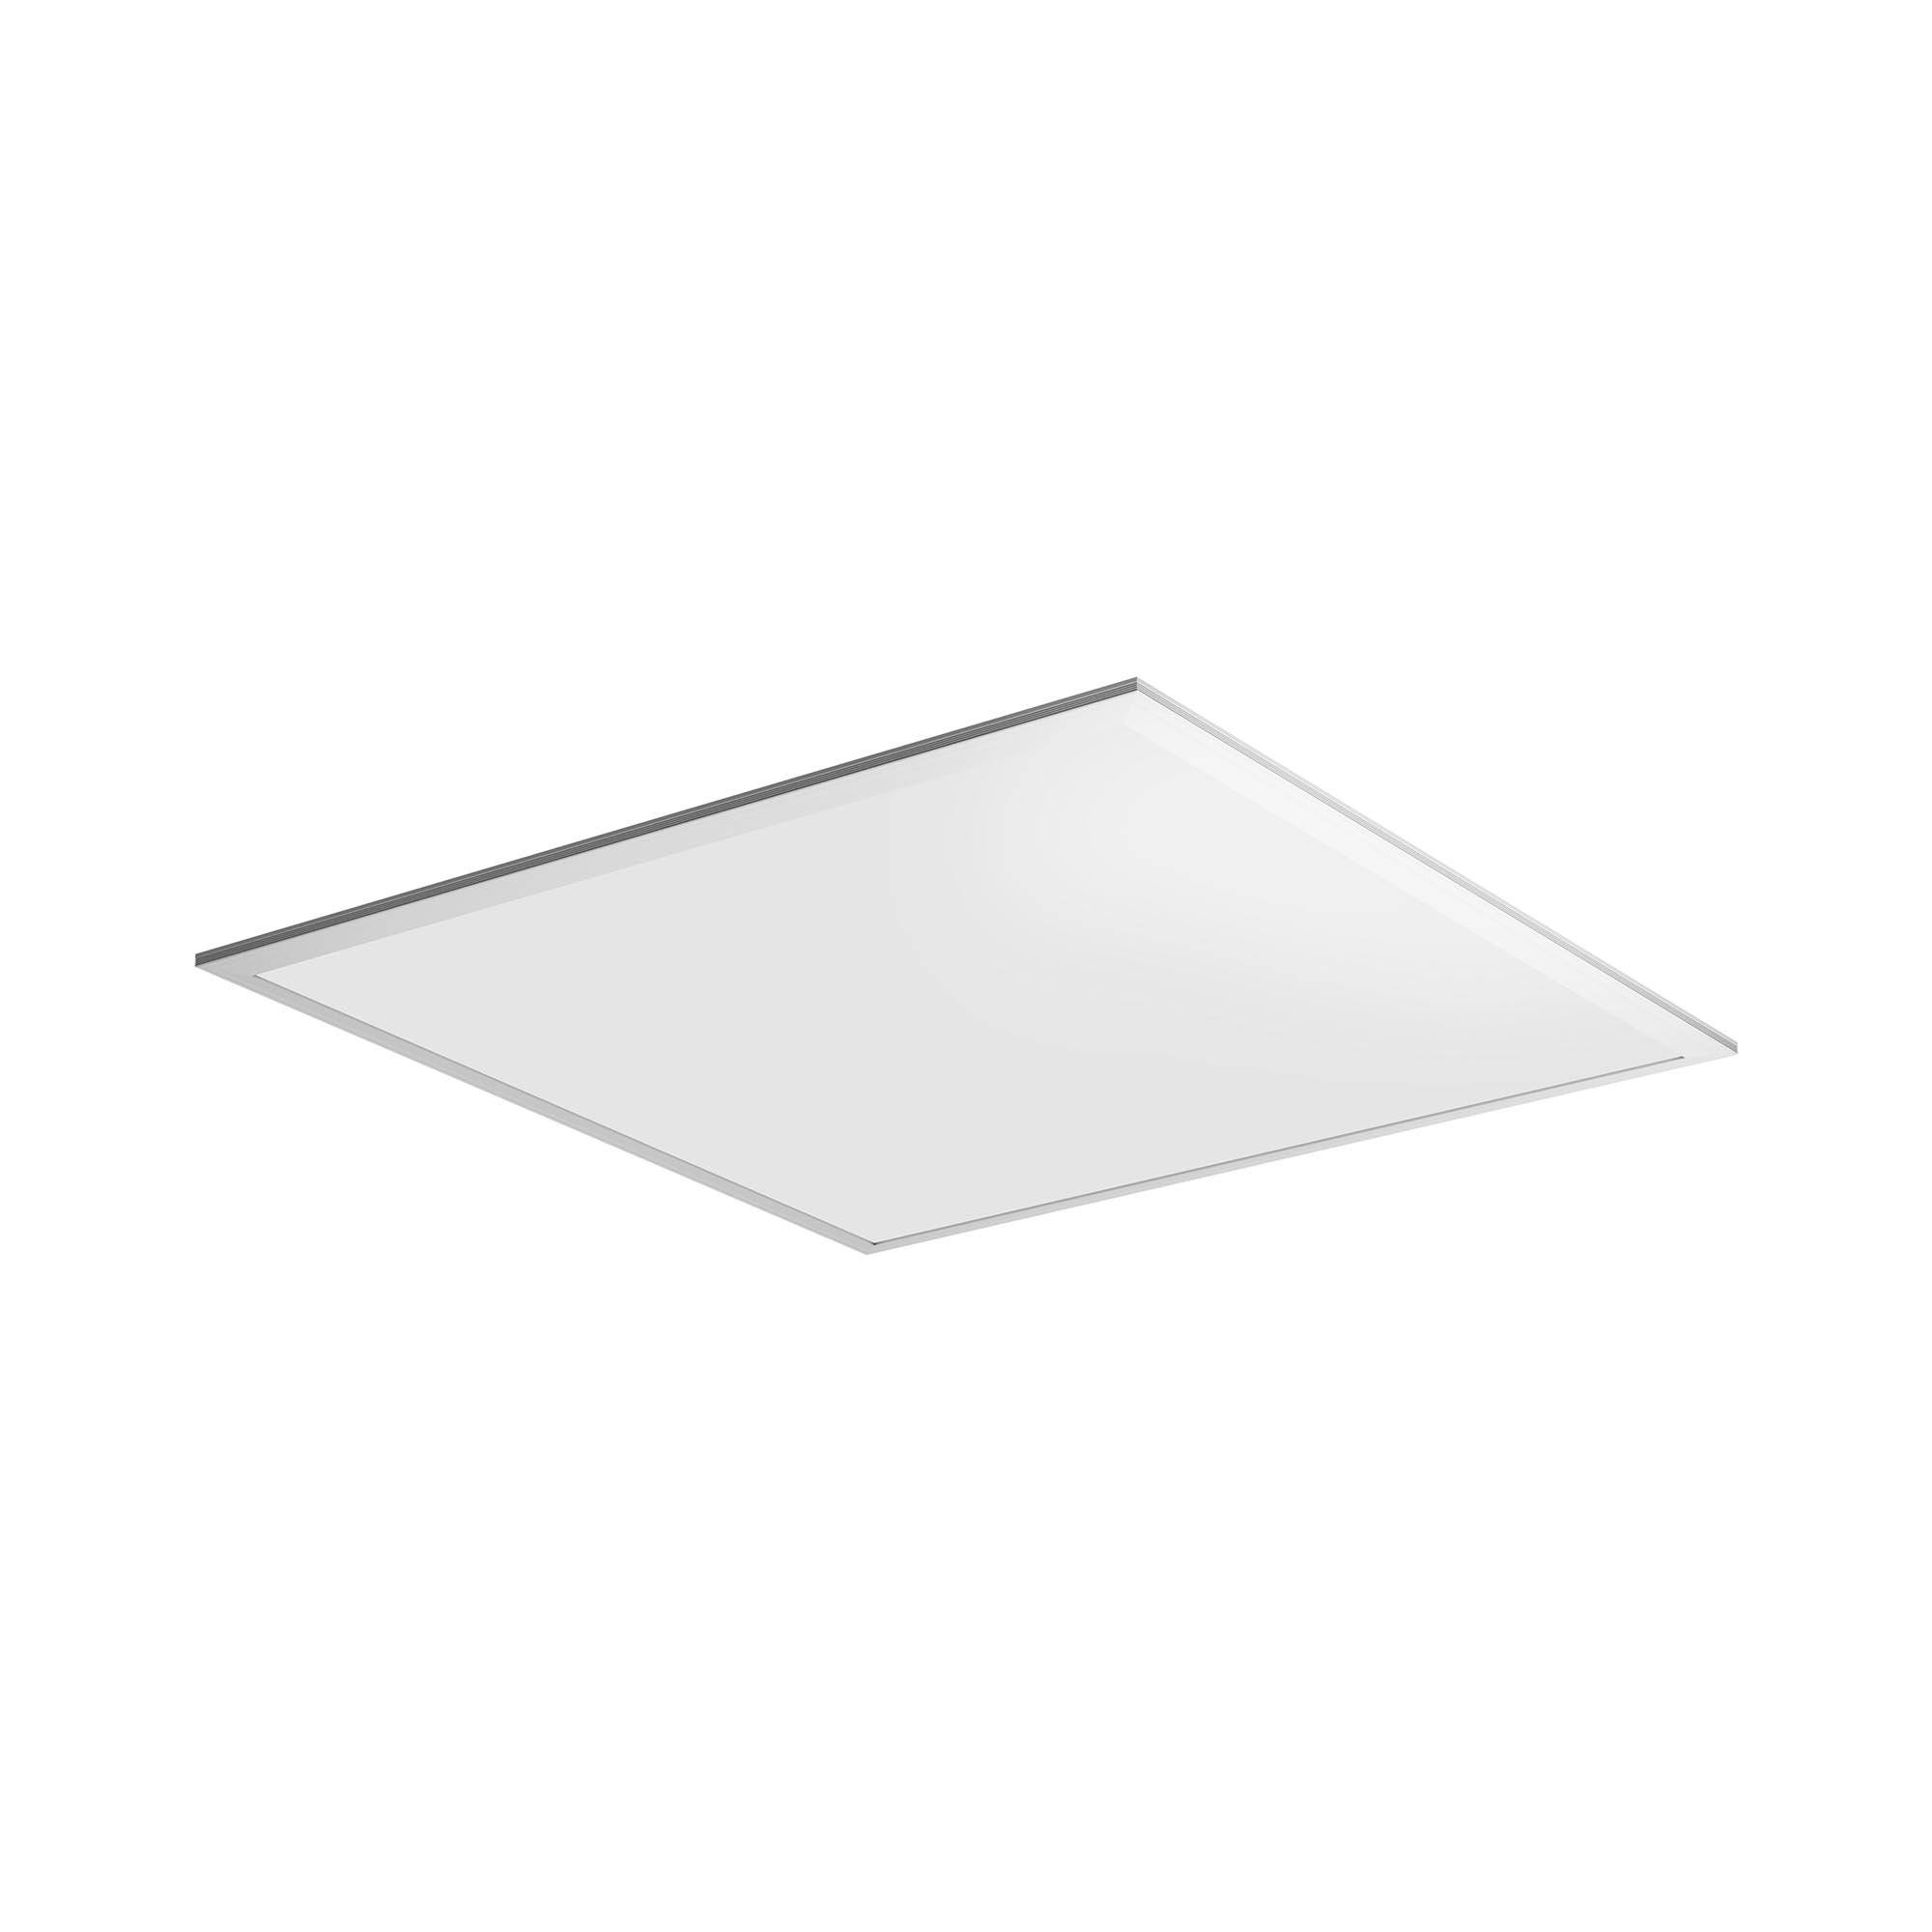 Fromm & Starck Panneau LED - 62 x 62 cm - 40 W - 3 800 lm - 6 000 K (blanc froid) STAR_62_CW